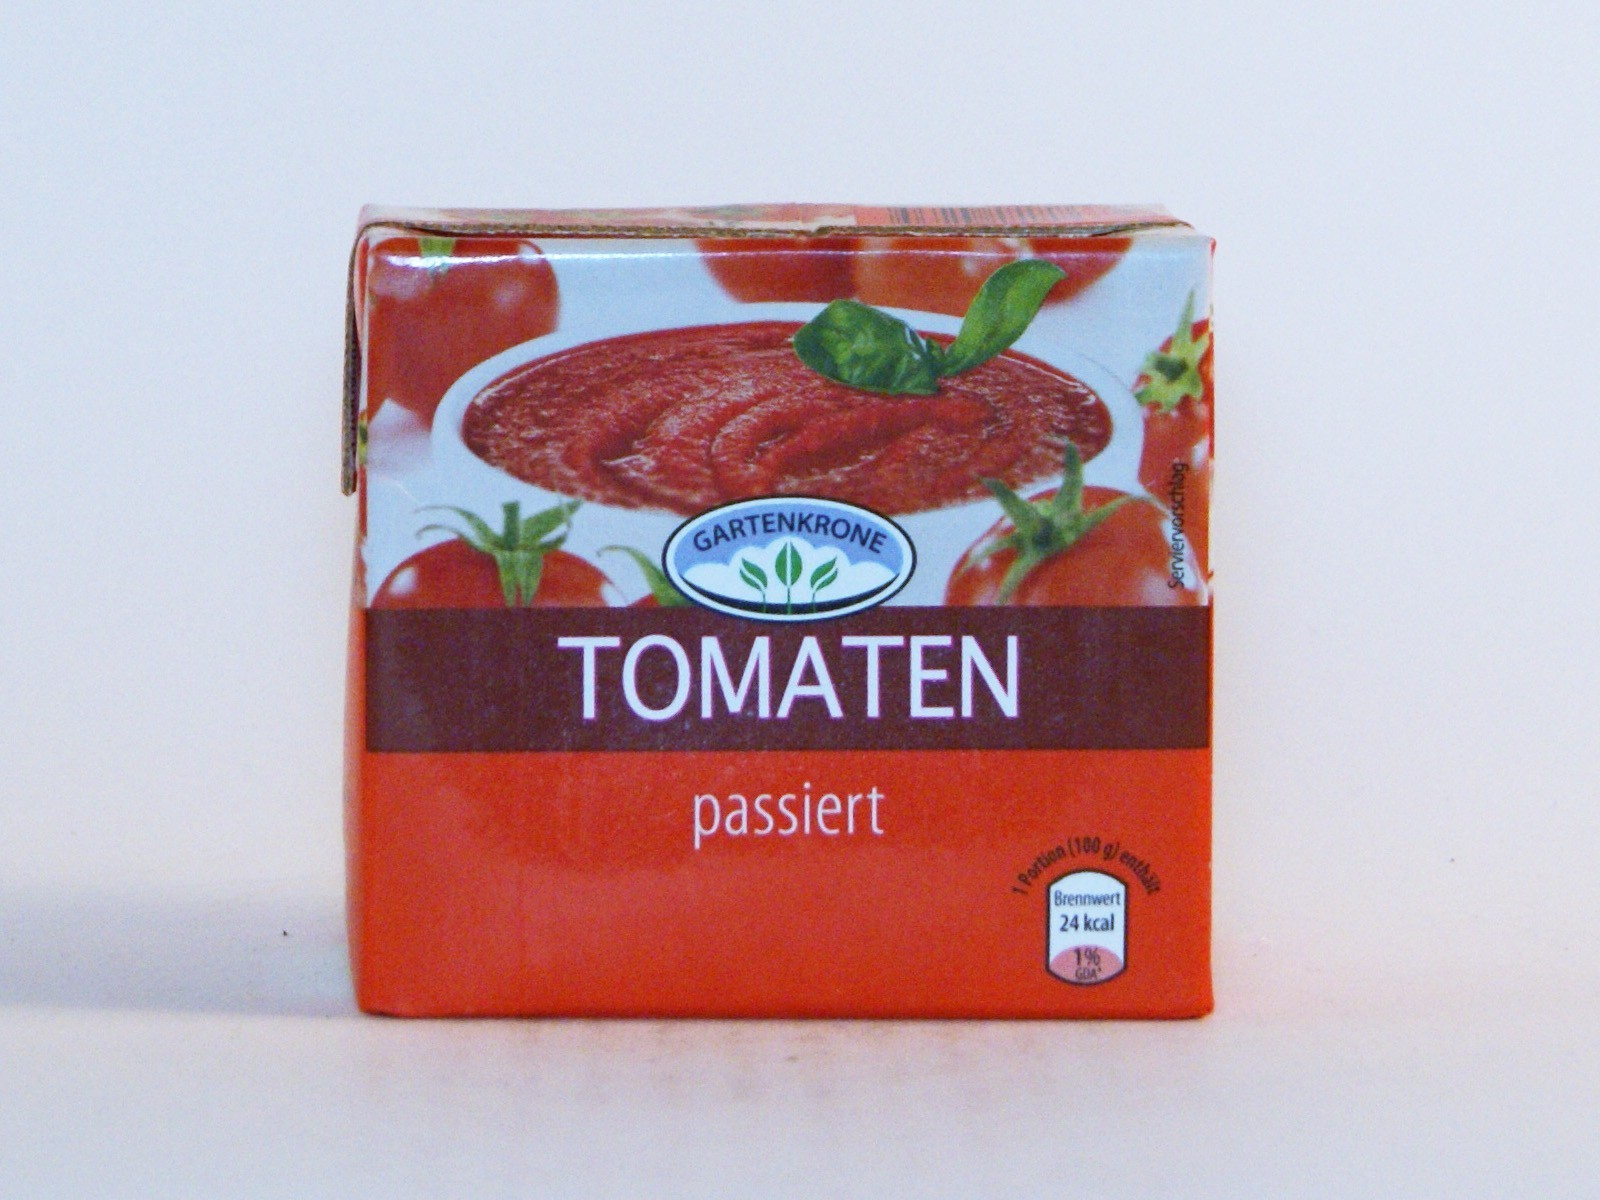 gartenkrone tomaten passiert. Black Bedroom Furniture Sets. Home Design Ideas